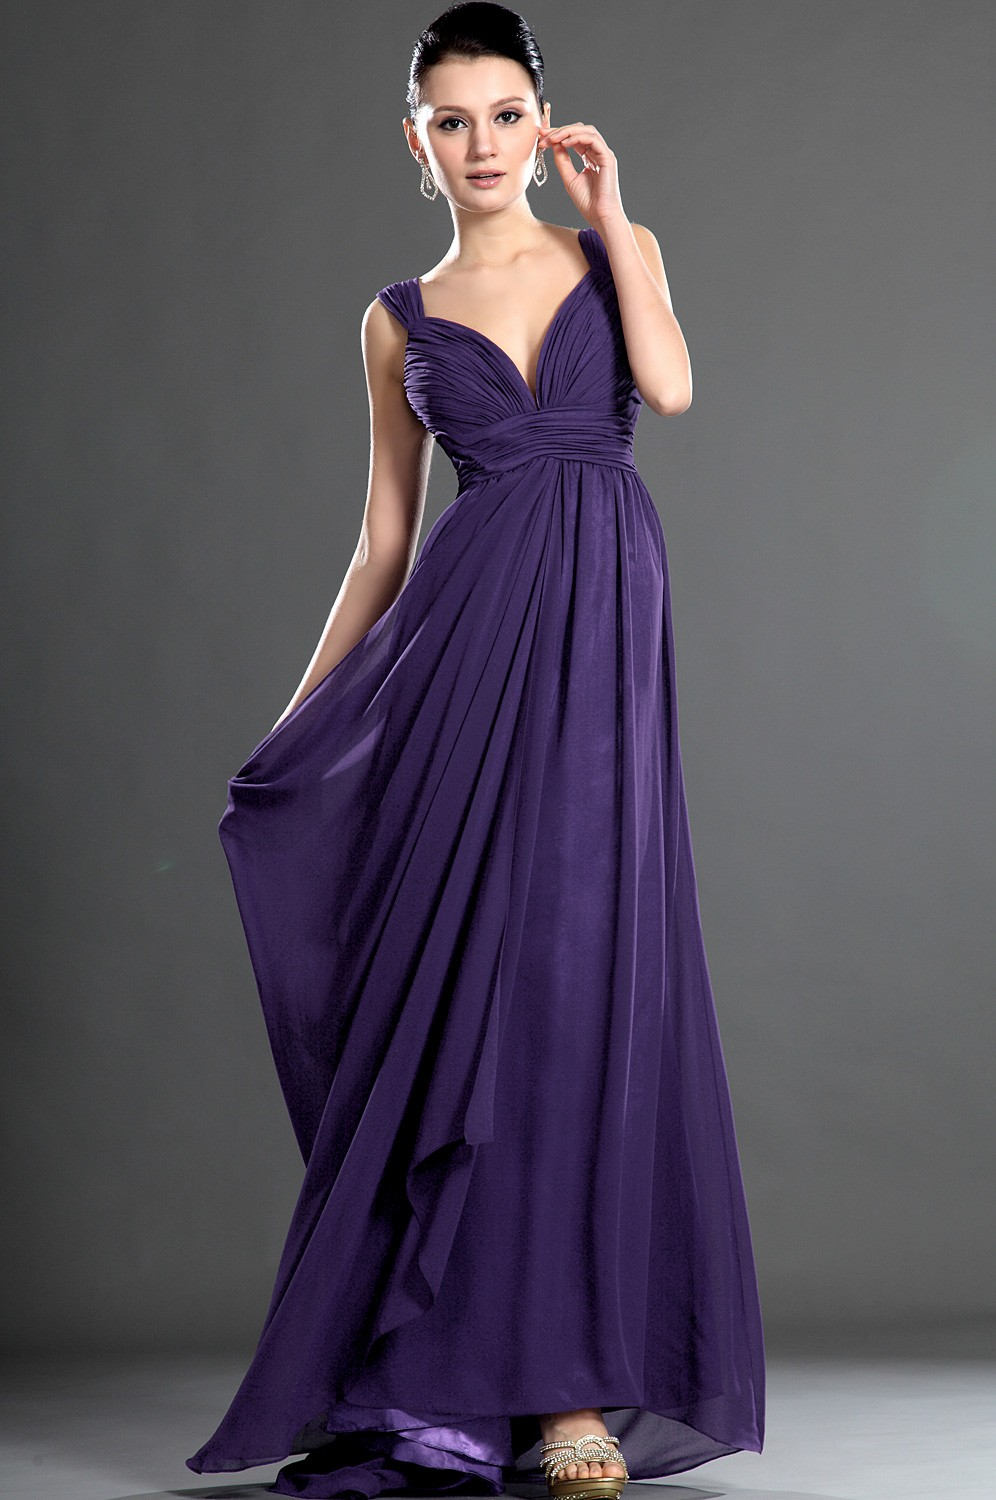 Purple Cocktail Dress Picture Collection | DressedUpGirl.com